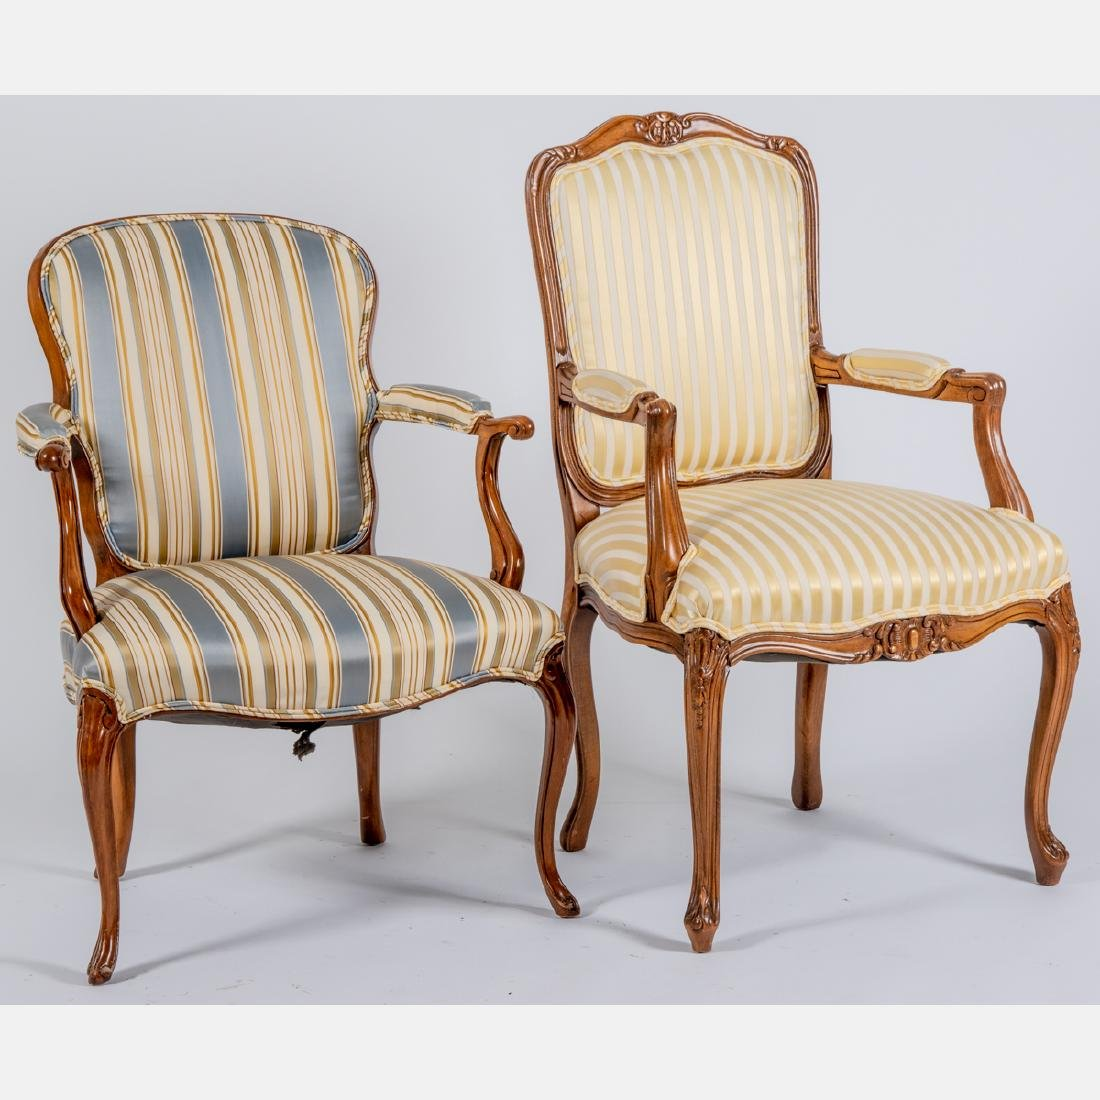 Two Louis XV Style Upholstered Fauteuils, 20th Century